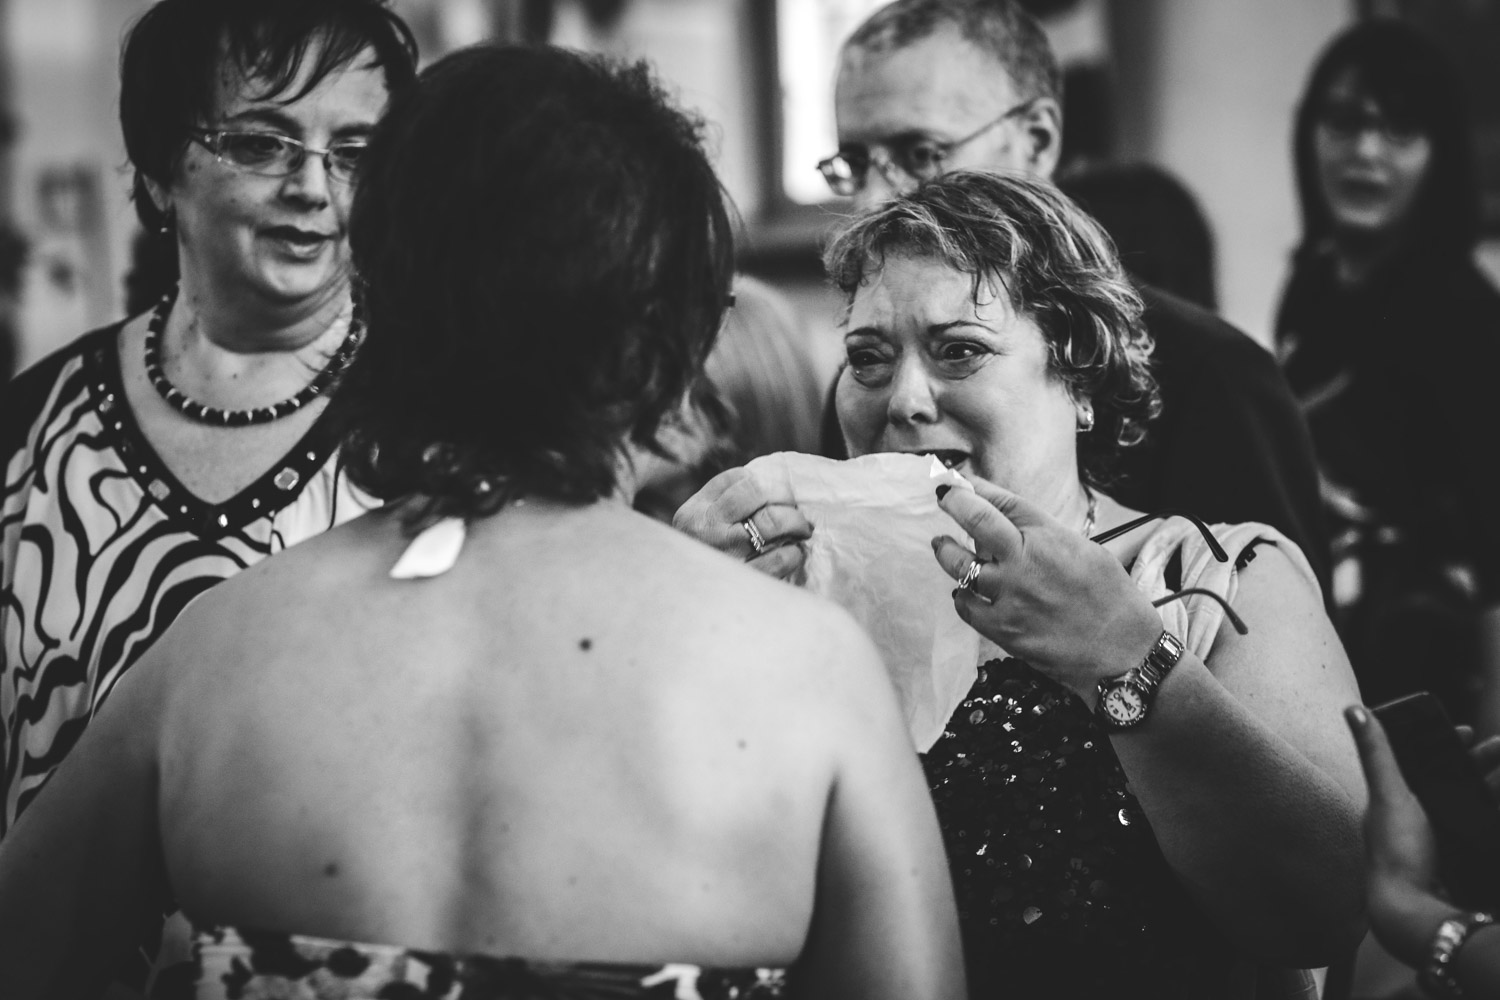 monica-sica_photography_trattoria-revelli_wedding-gay_torino_day_34